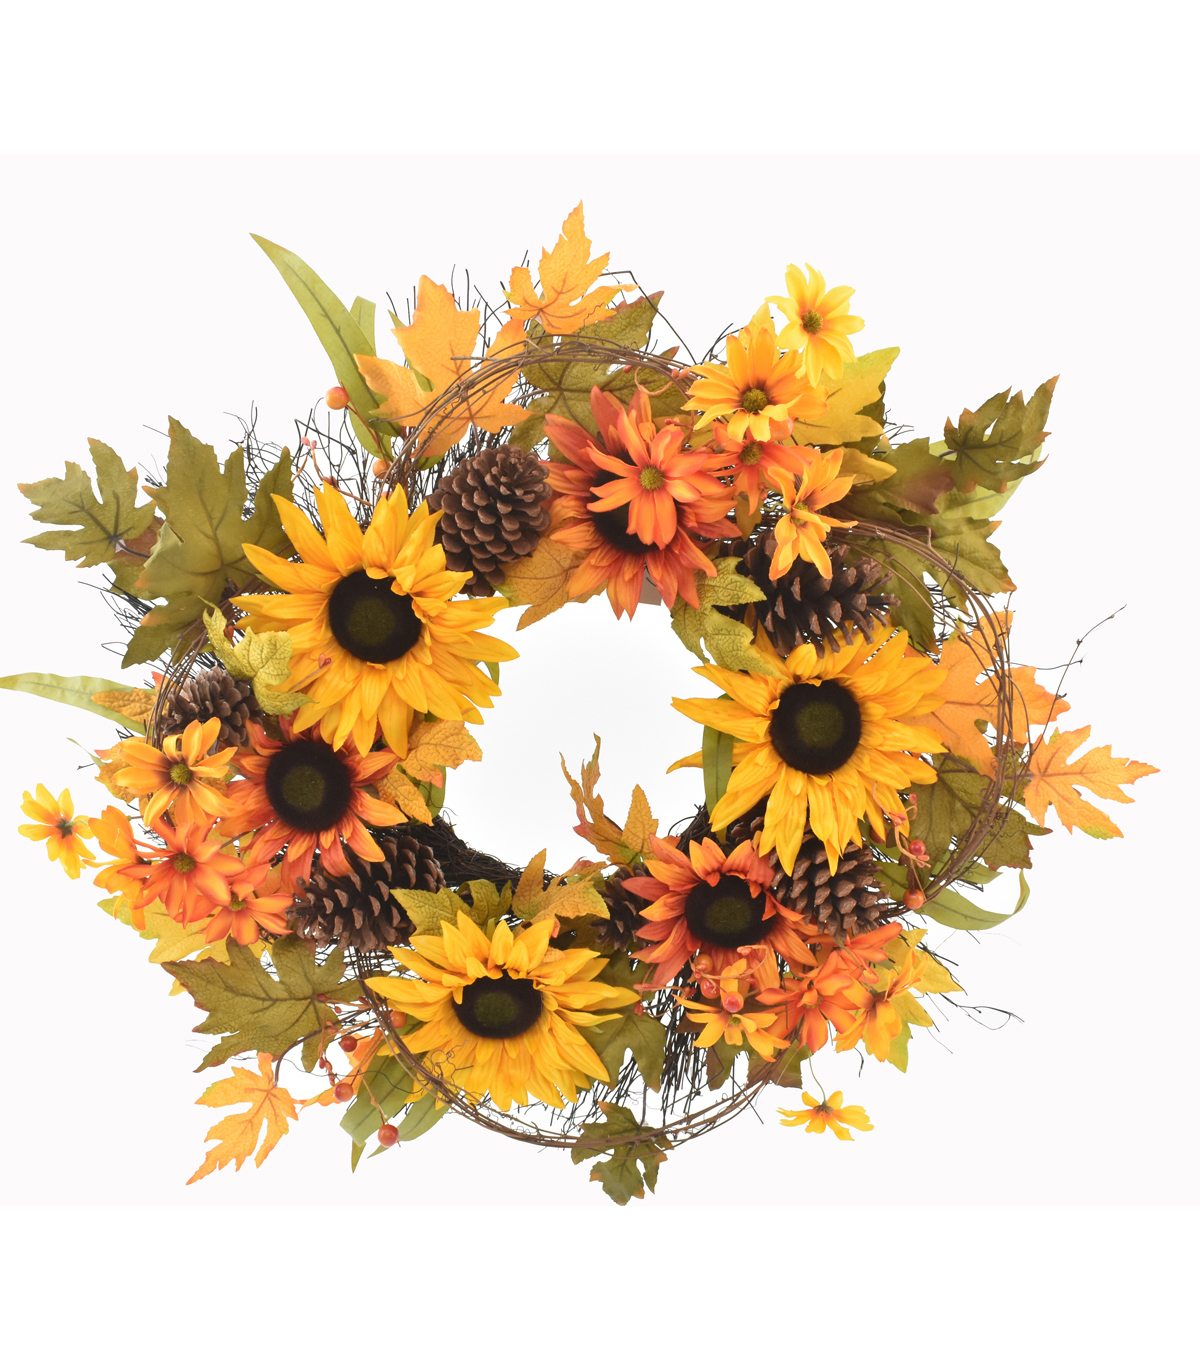 Blooming Autumn Extra Large Sunflower, Pinecone & Leaves Wreath